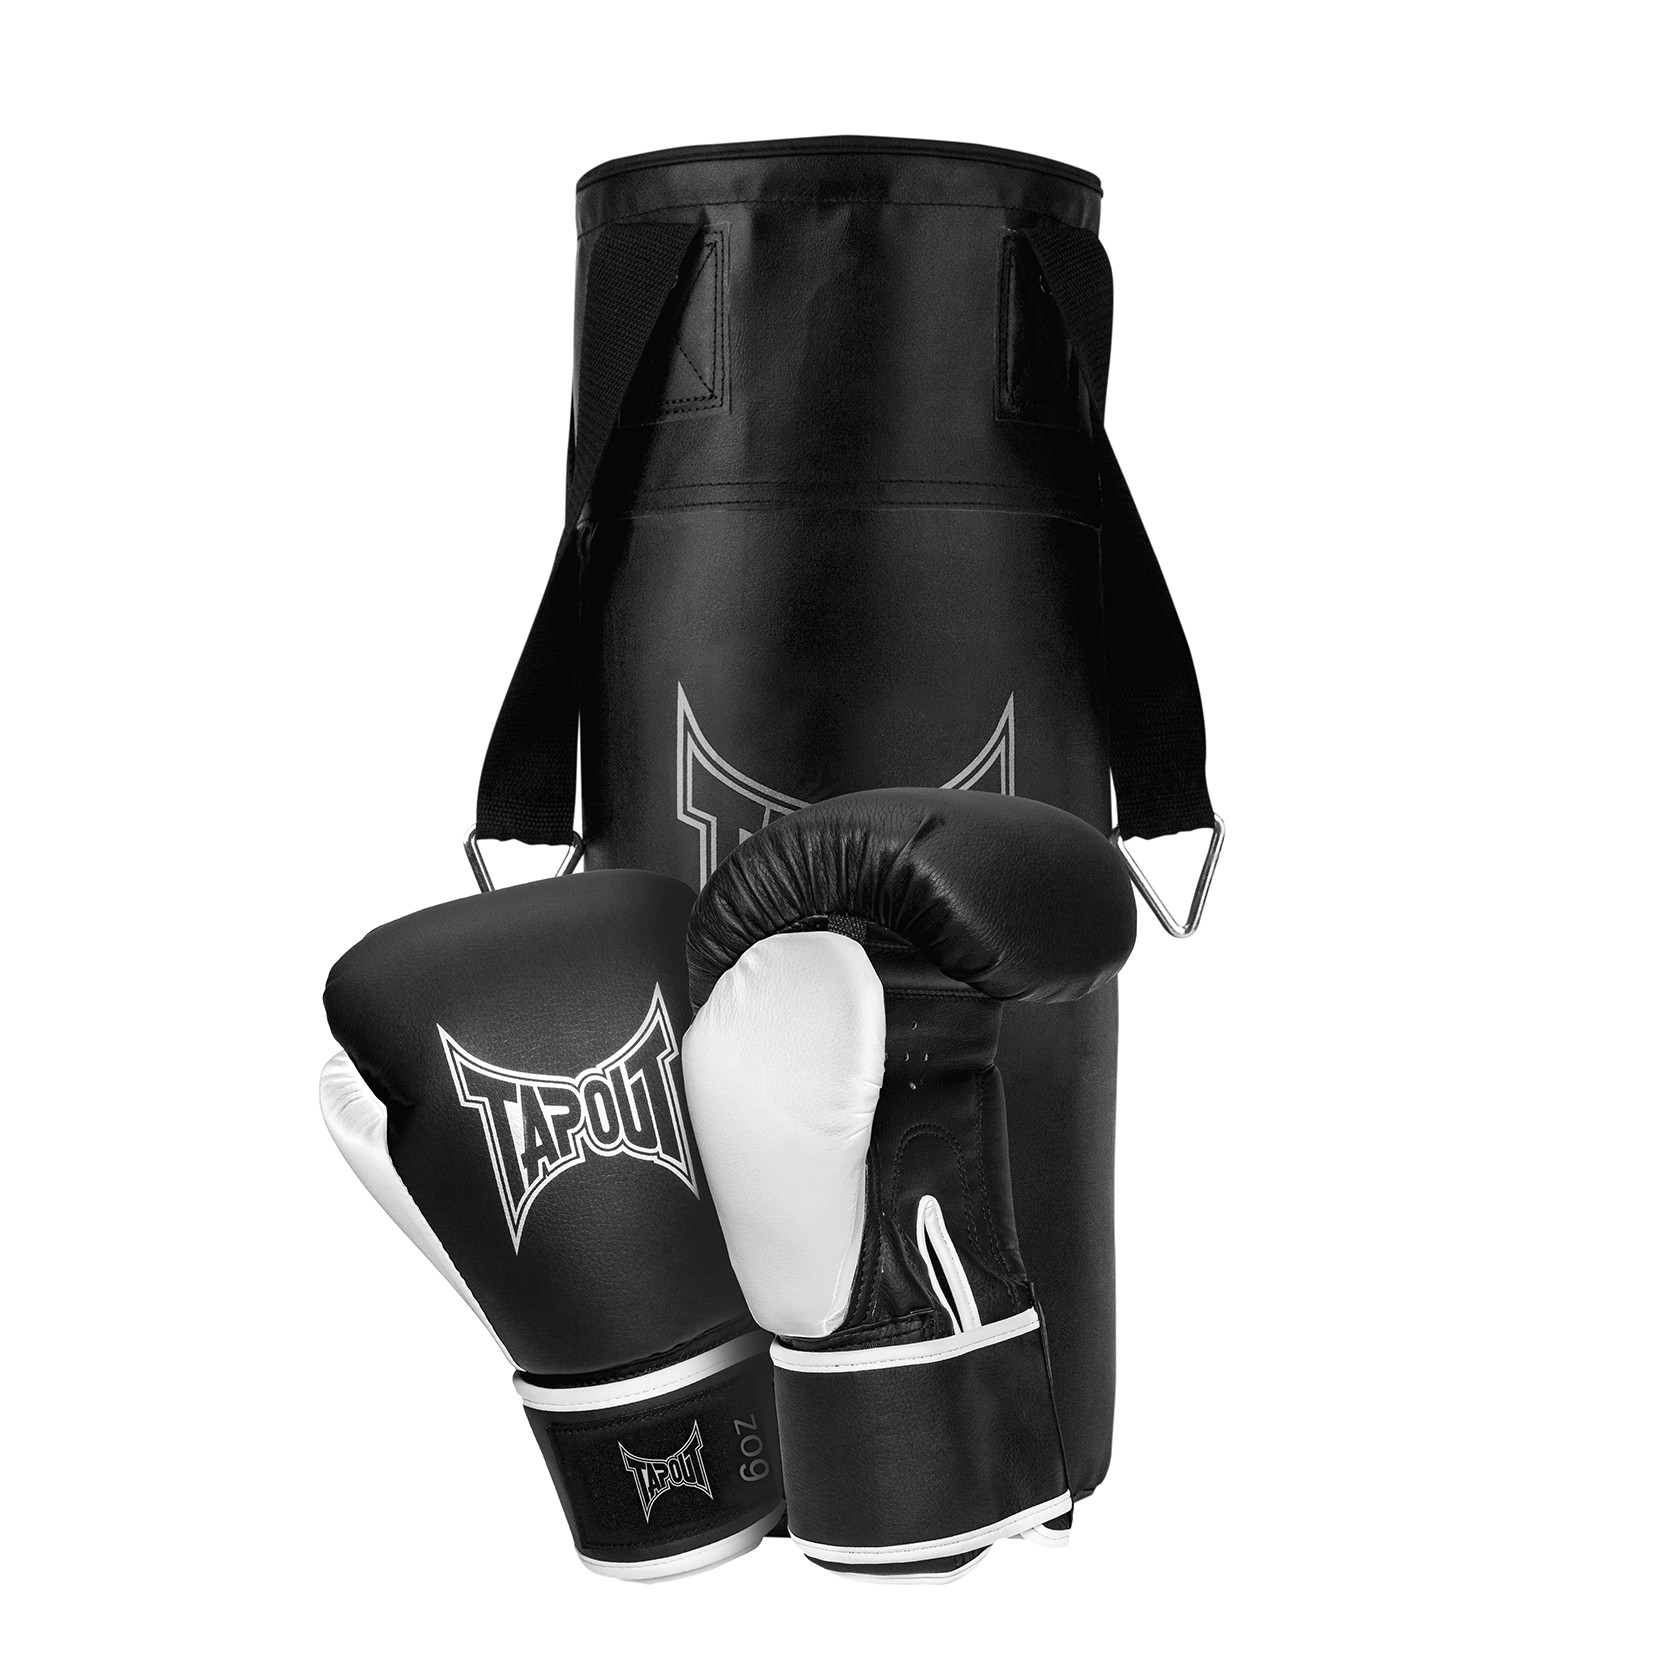 TapouT Youth Kickboxing Bag and Gloves Combo Kit 3013Y